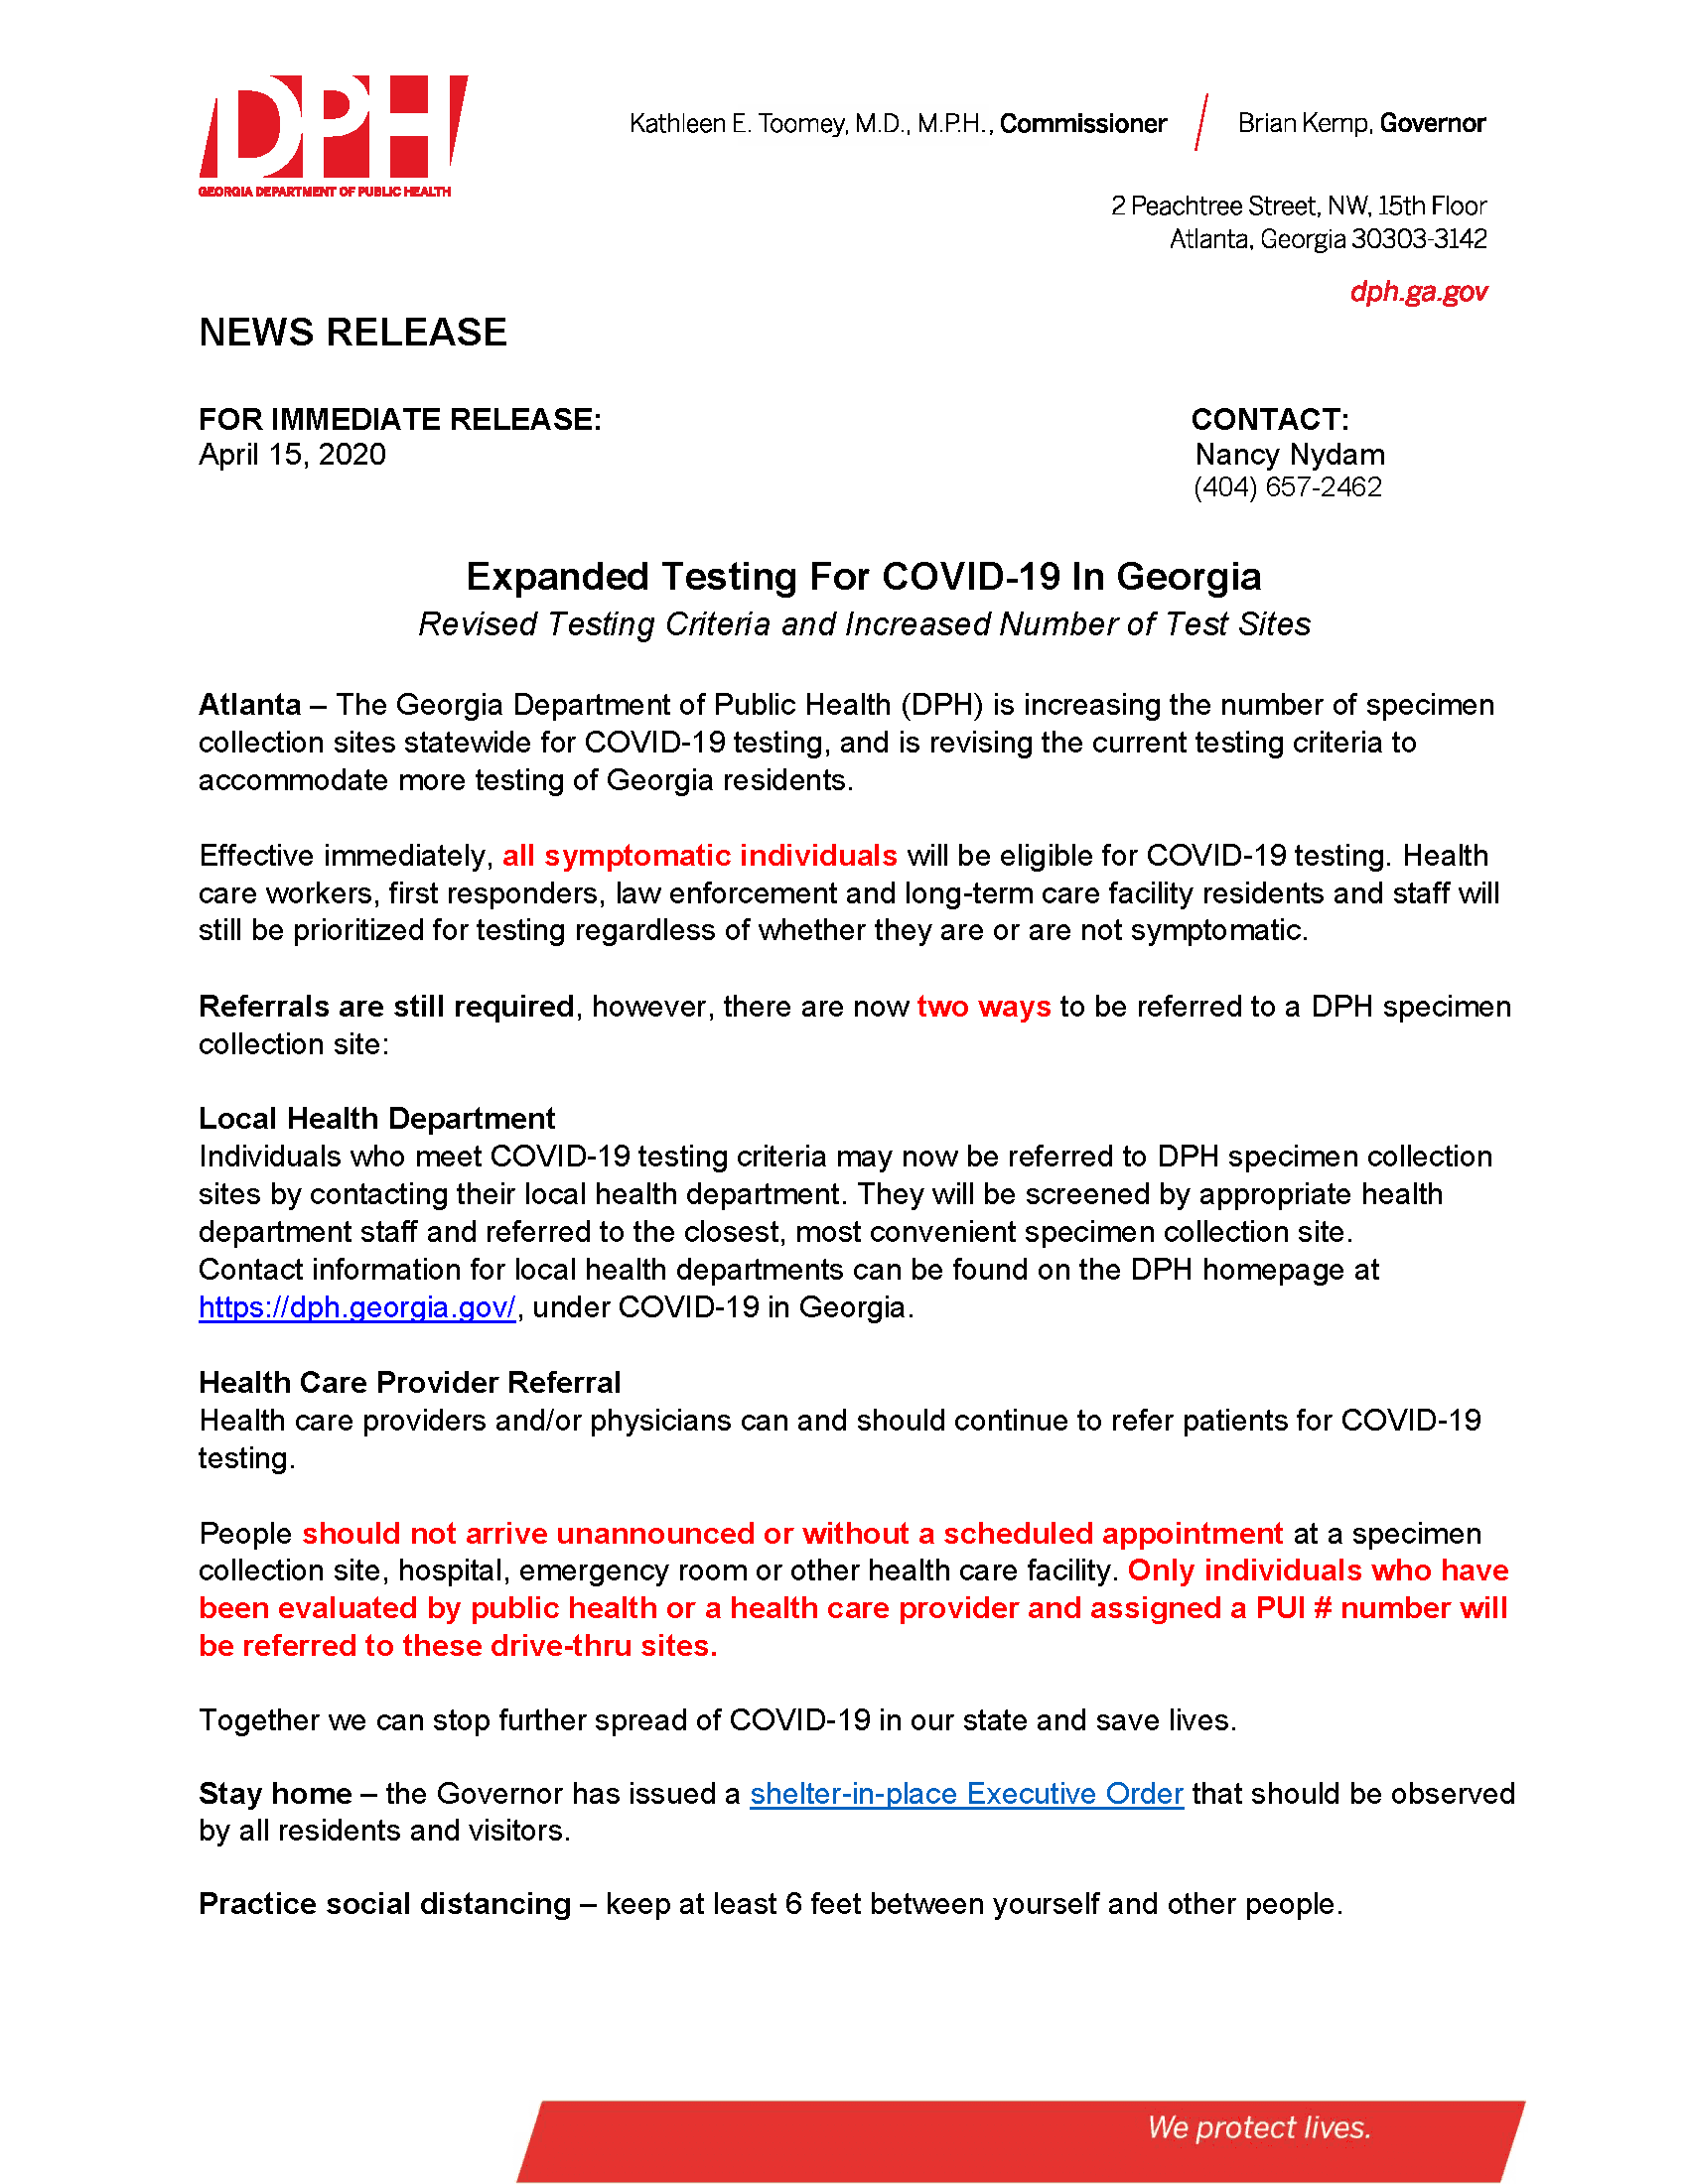 DPH News Release - Expanding COVID-19 Testing in Georgia_Page_1